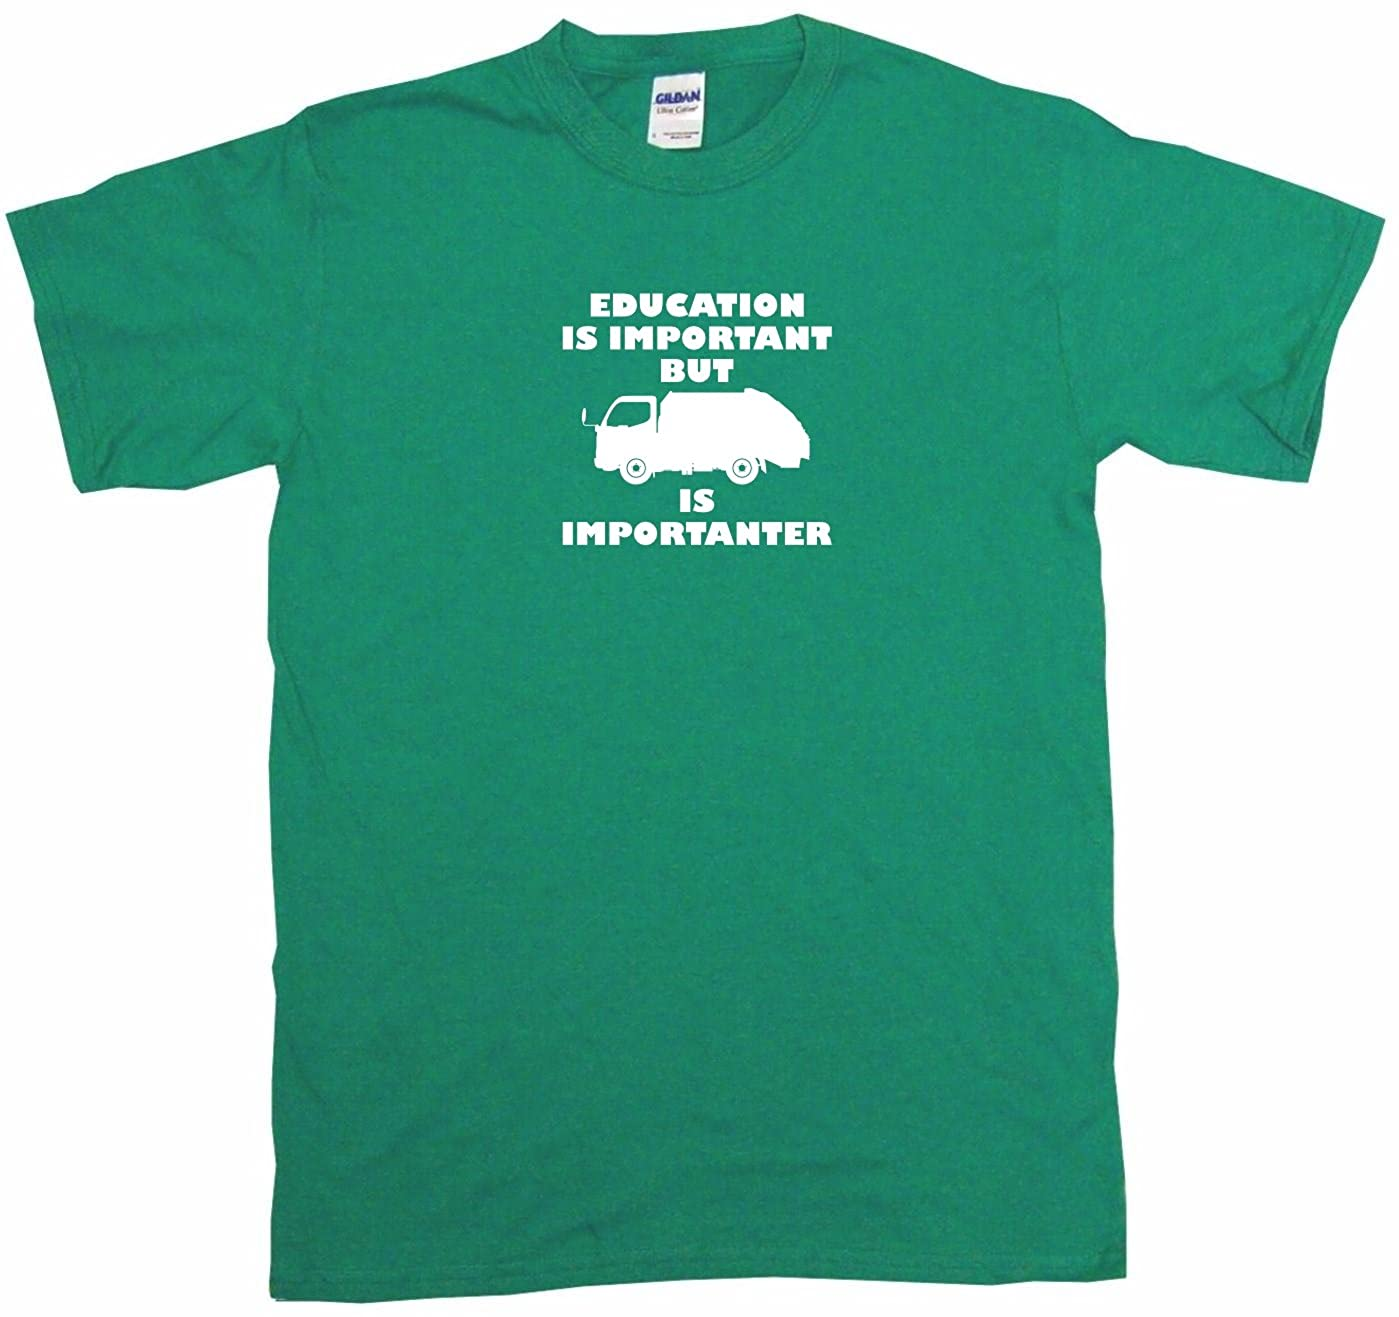 Education Is Important but Garbage Truck Logo Is Importanter Little Boys Shirt